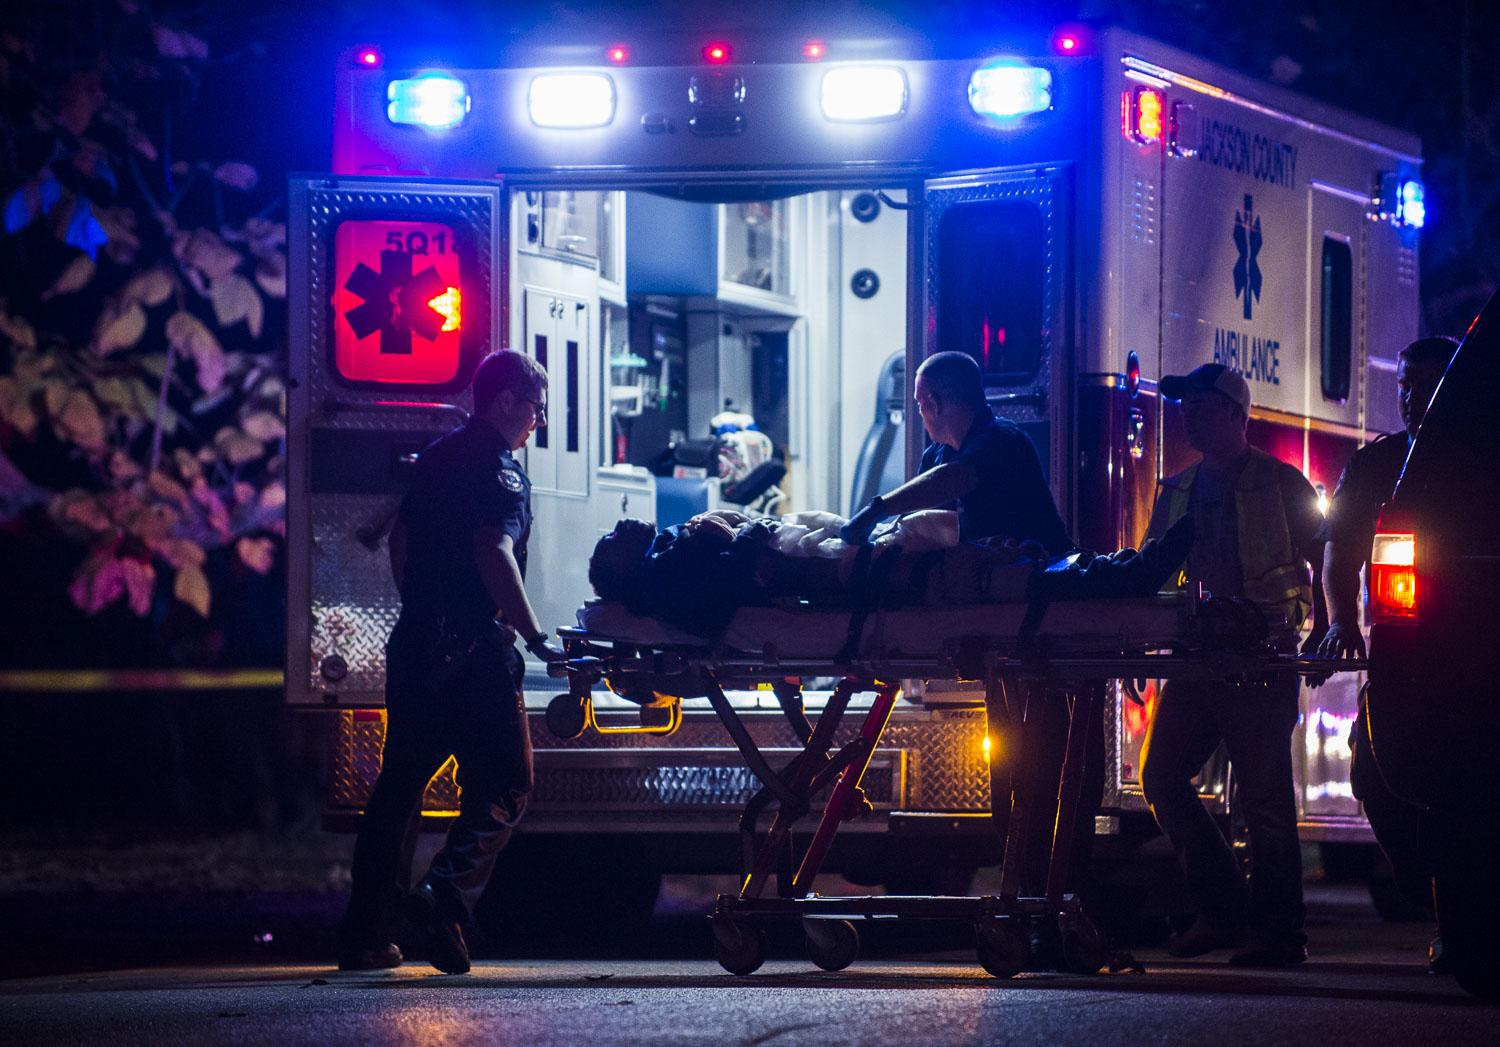 The victim of a stabbing is loaded into an ambulance Sunday, Oct. 30, 2016, in the 600 block of North Michael Street in Carbondale. (Ryan Michalesko | @photosbylesko)